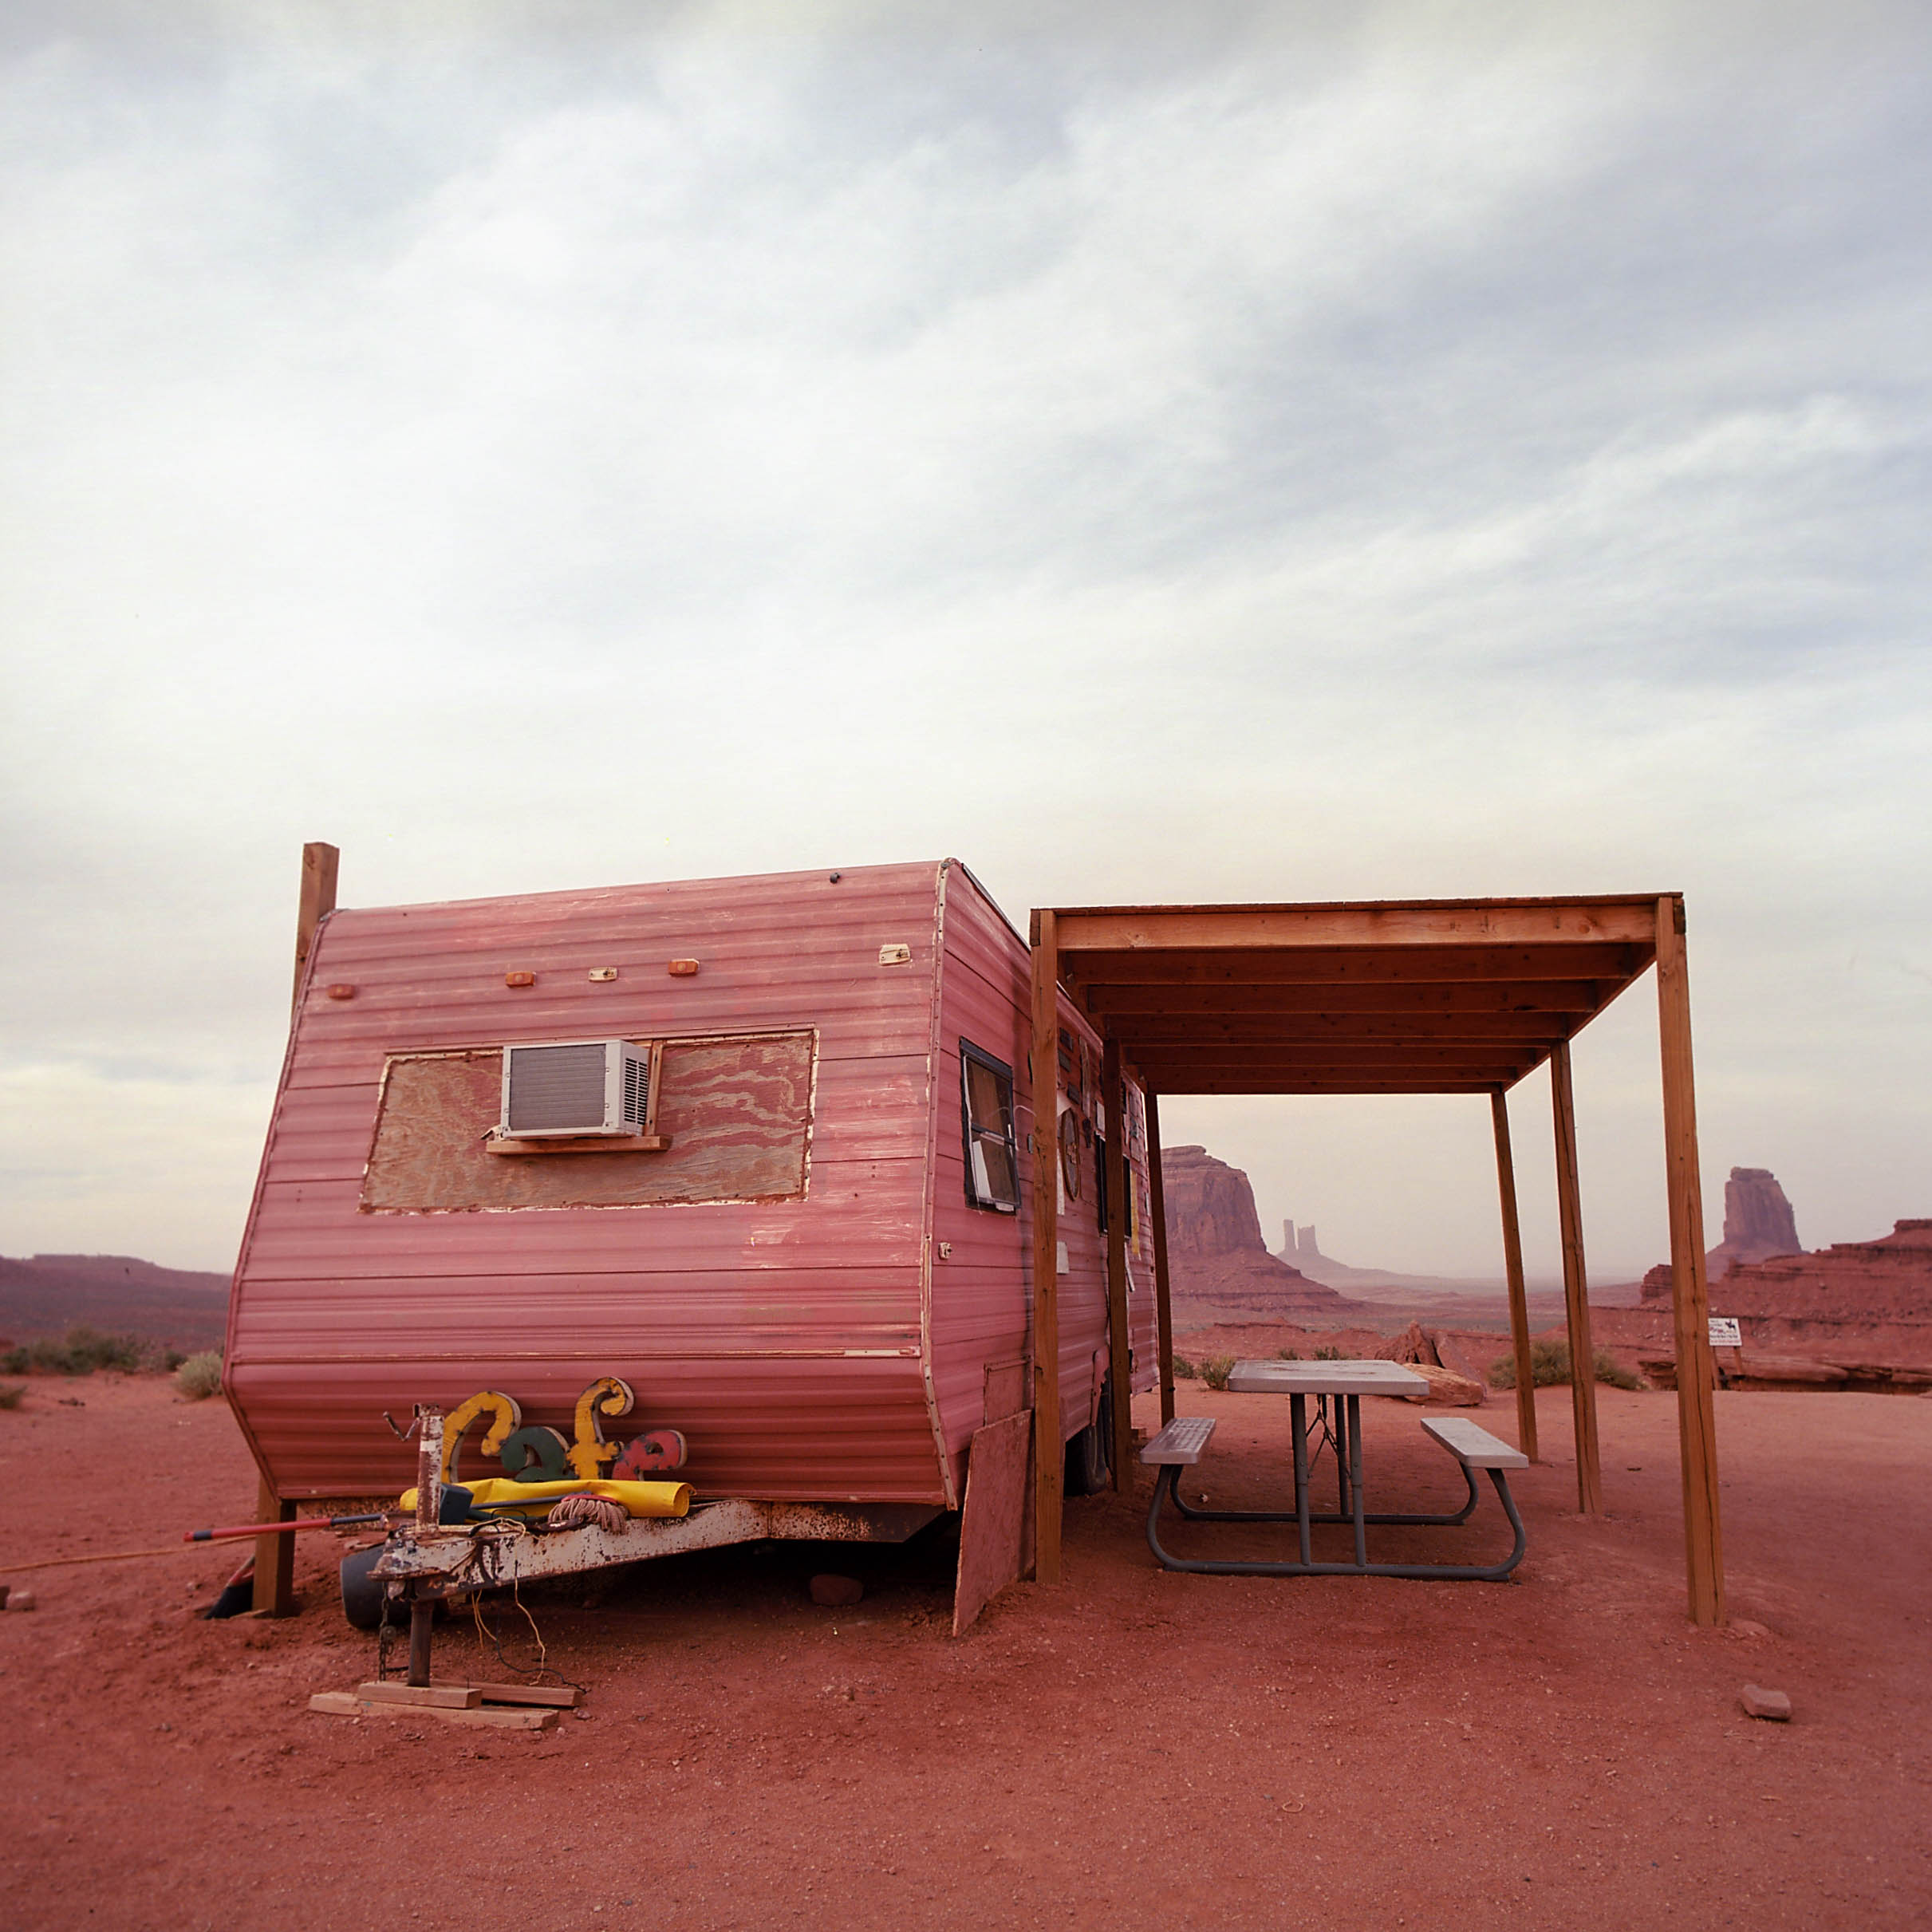 TRAILER IN MONUMENT VALLEY